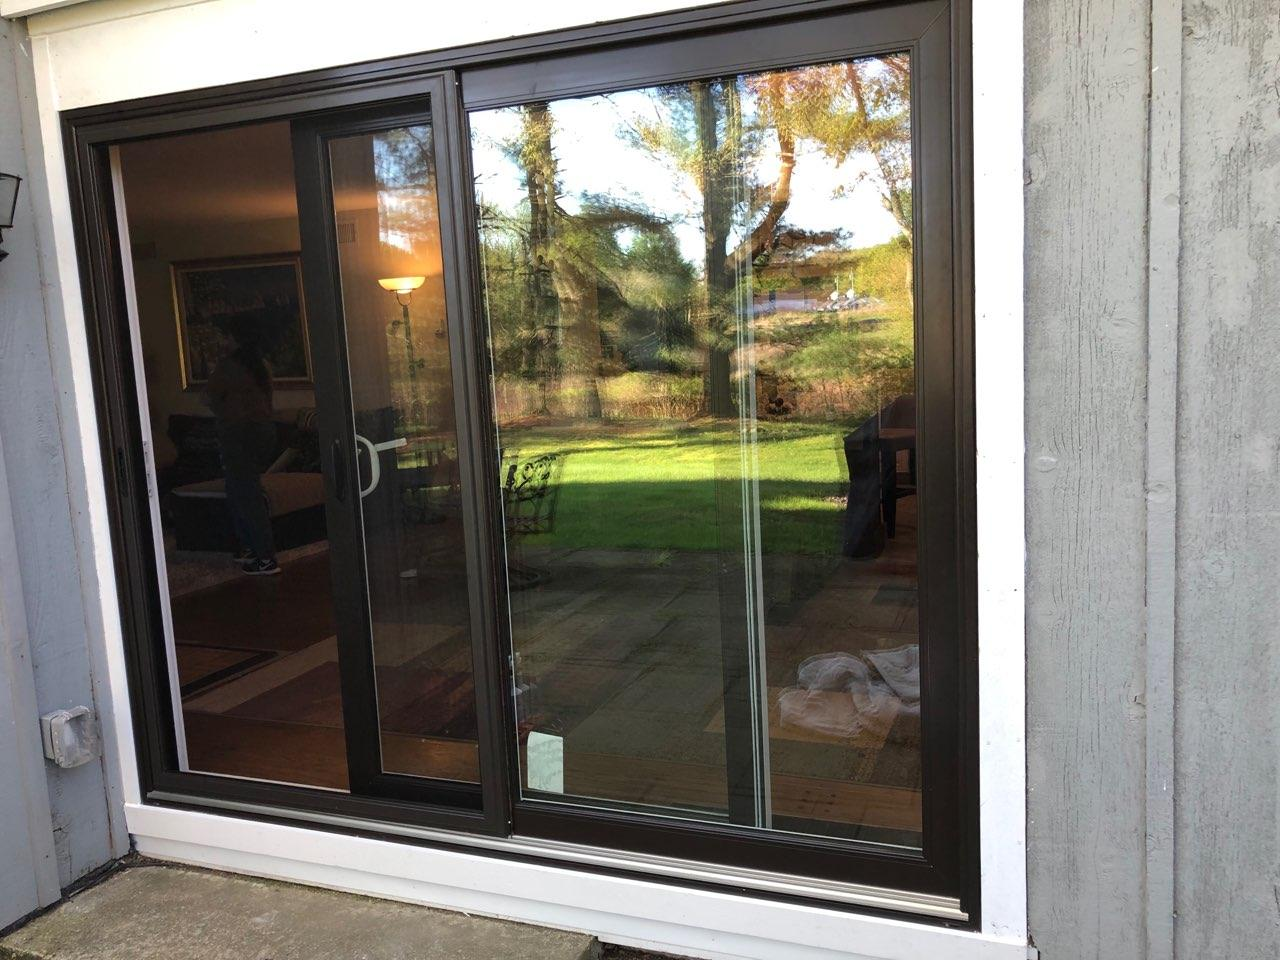 New Patio door completed in Somers